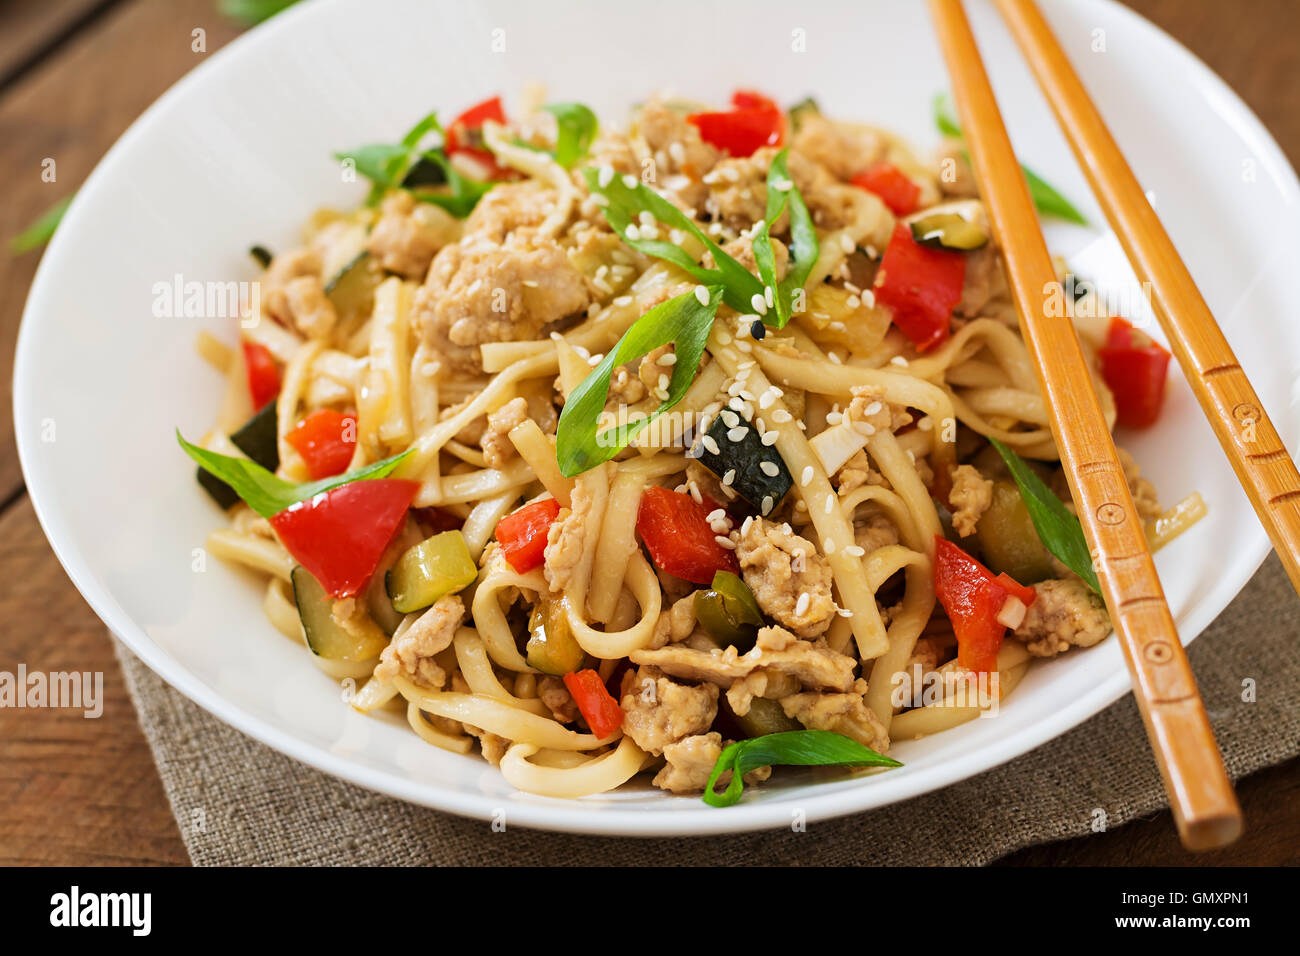 Udon noodles with meat and vegetables in an Asian style Stock Photo